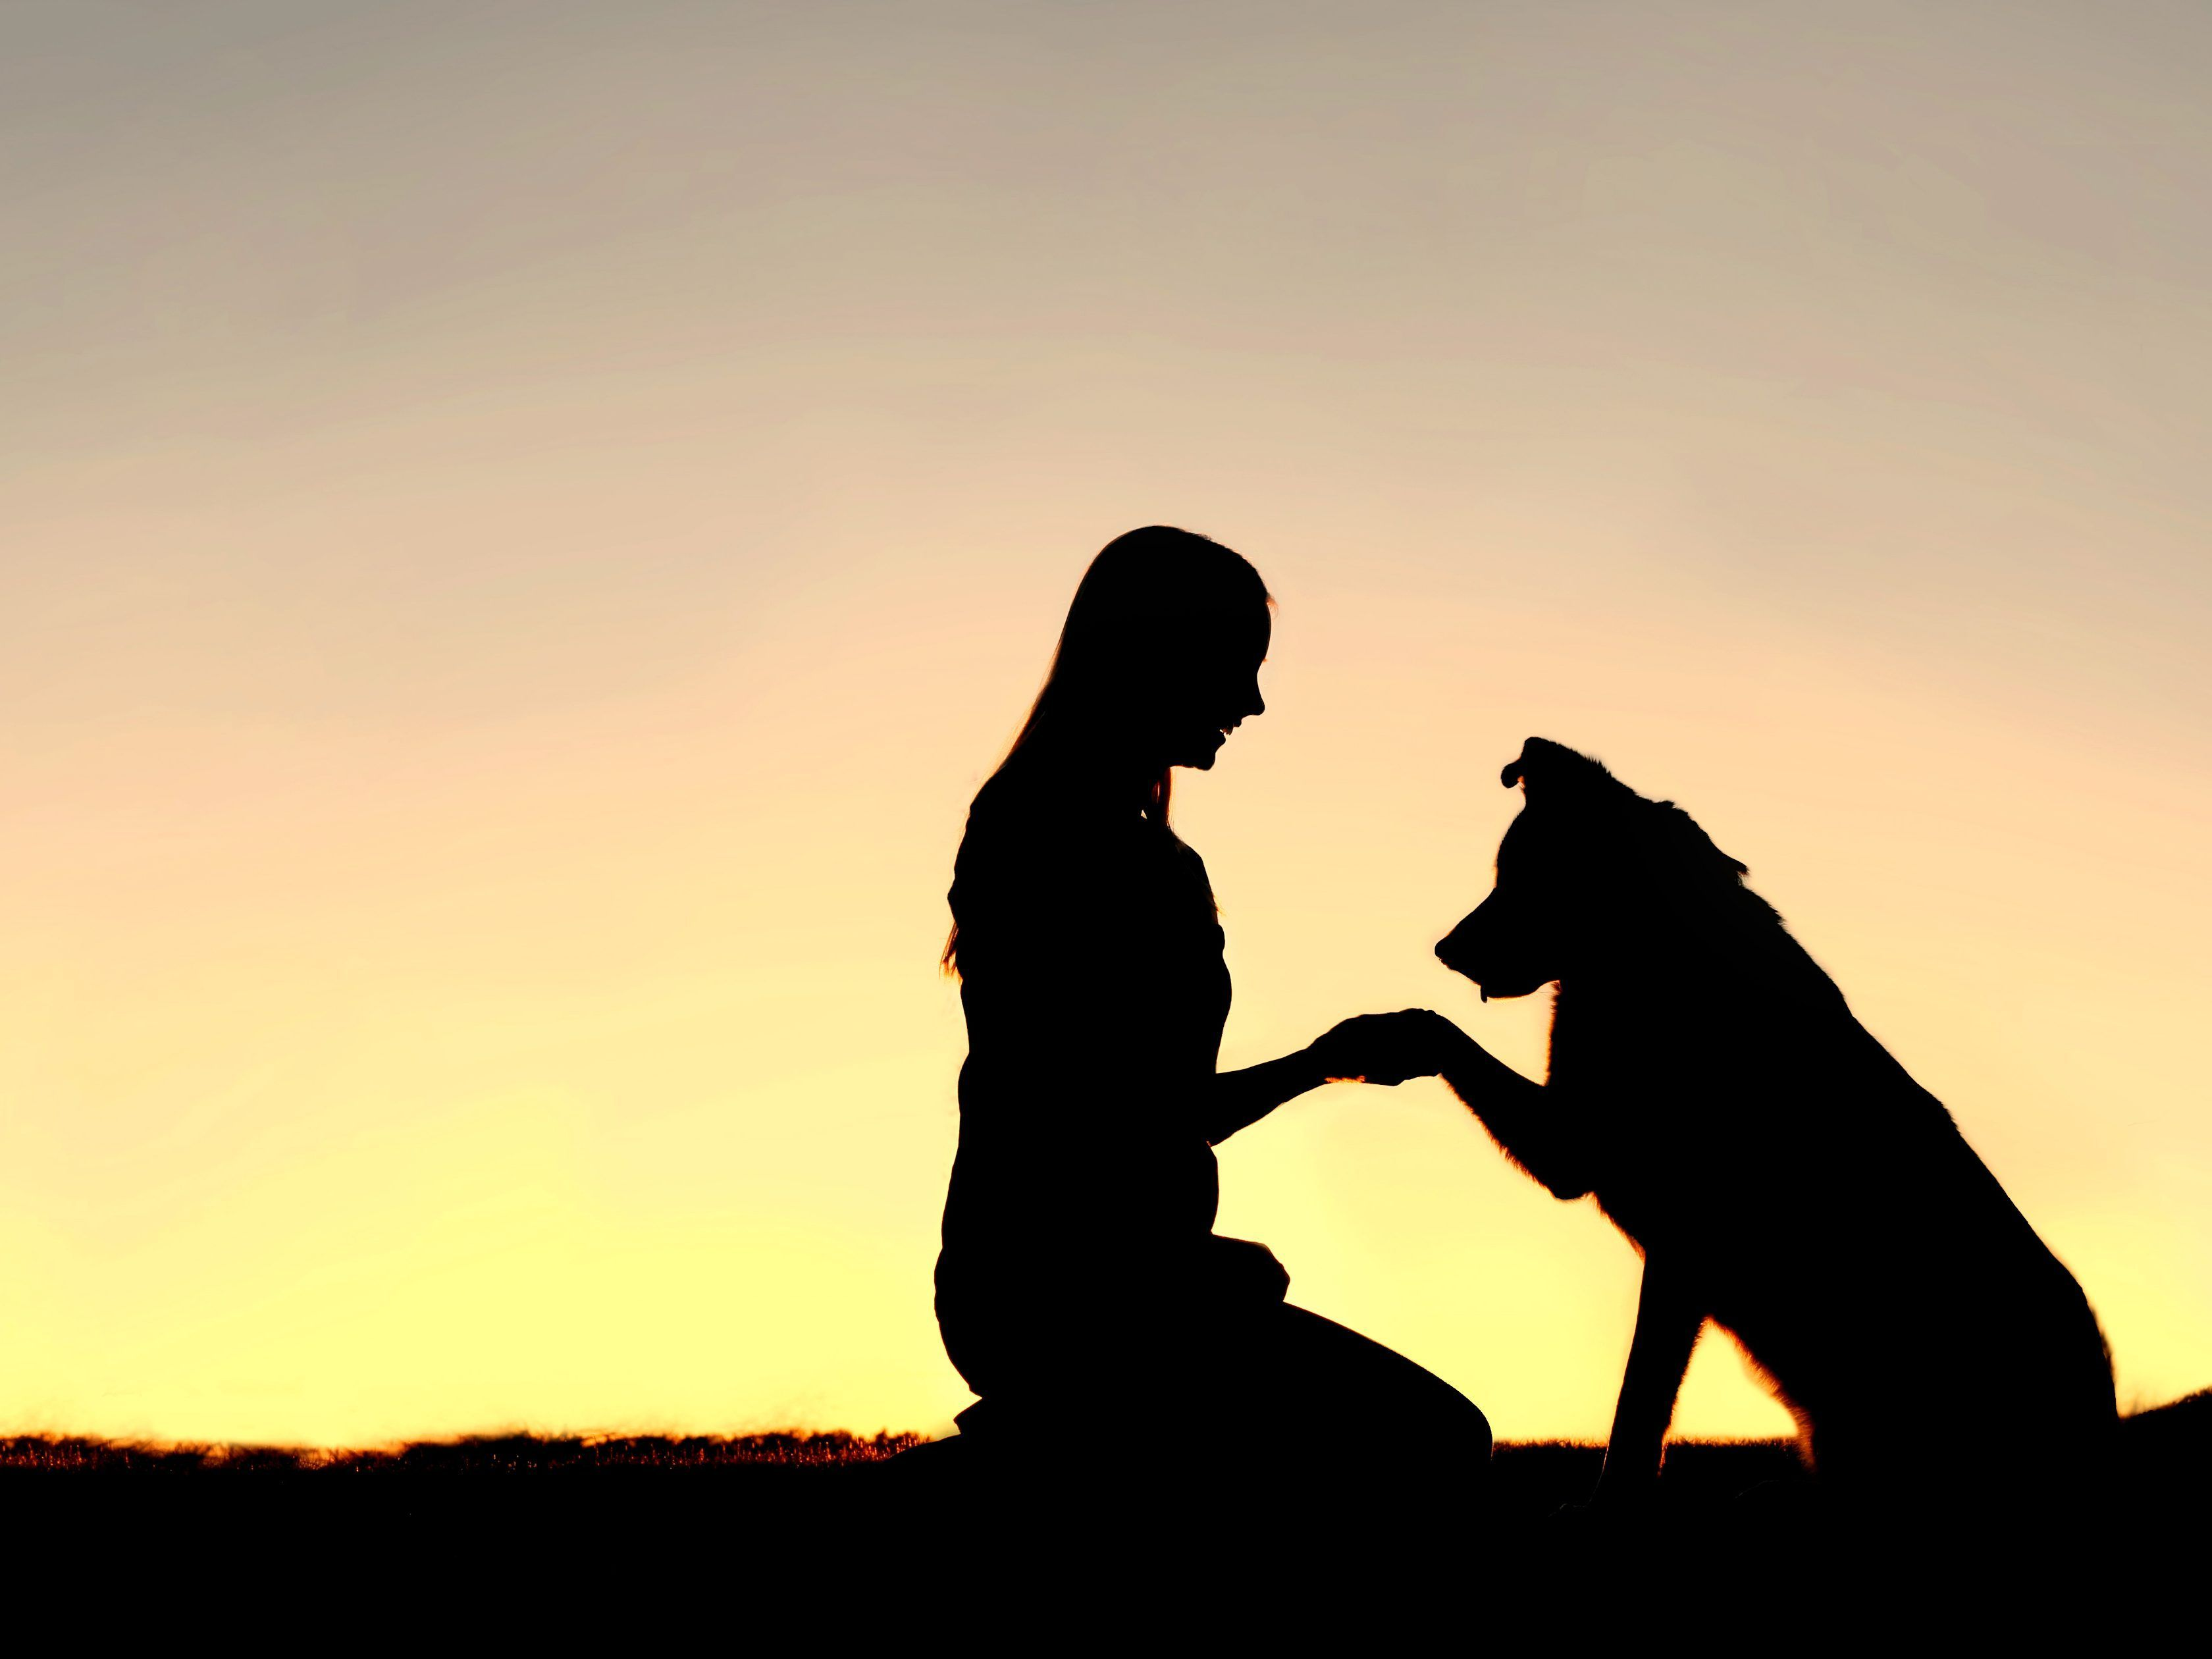 Dog Reunited With Owner After 8 Month 282 Km Journey Dog Family Pictures Dog Shaking Dog Silhouette Wallpaper cute pet dog sunset house